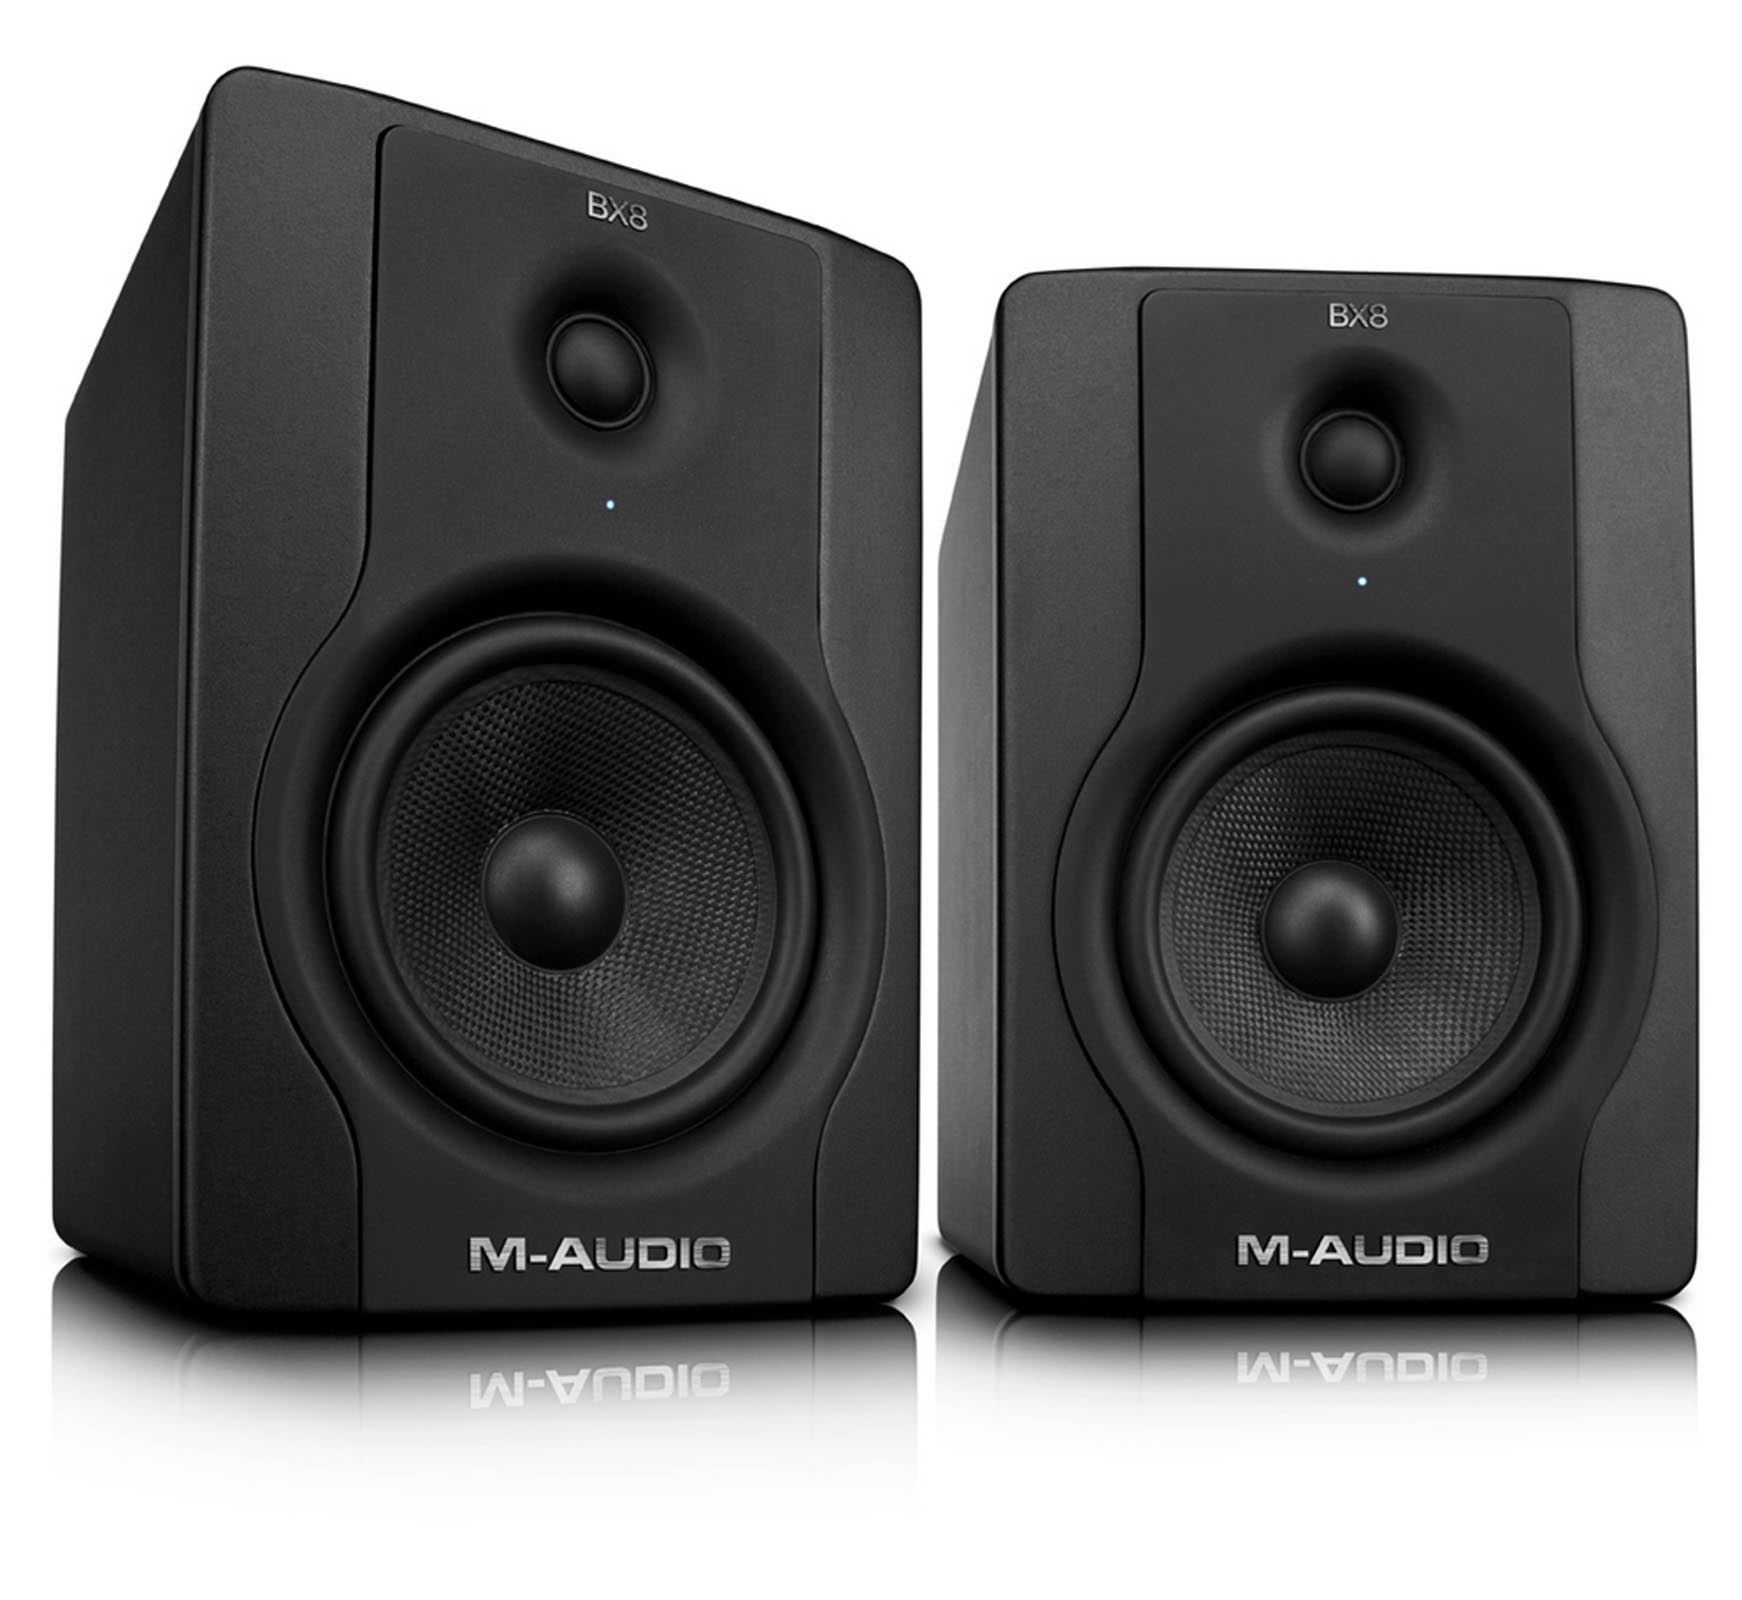 M-Audio BX8 D2 130-Watt Bi-Amplified Studio Monitors | Pair